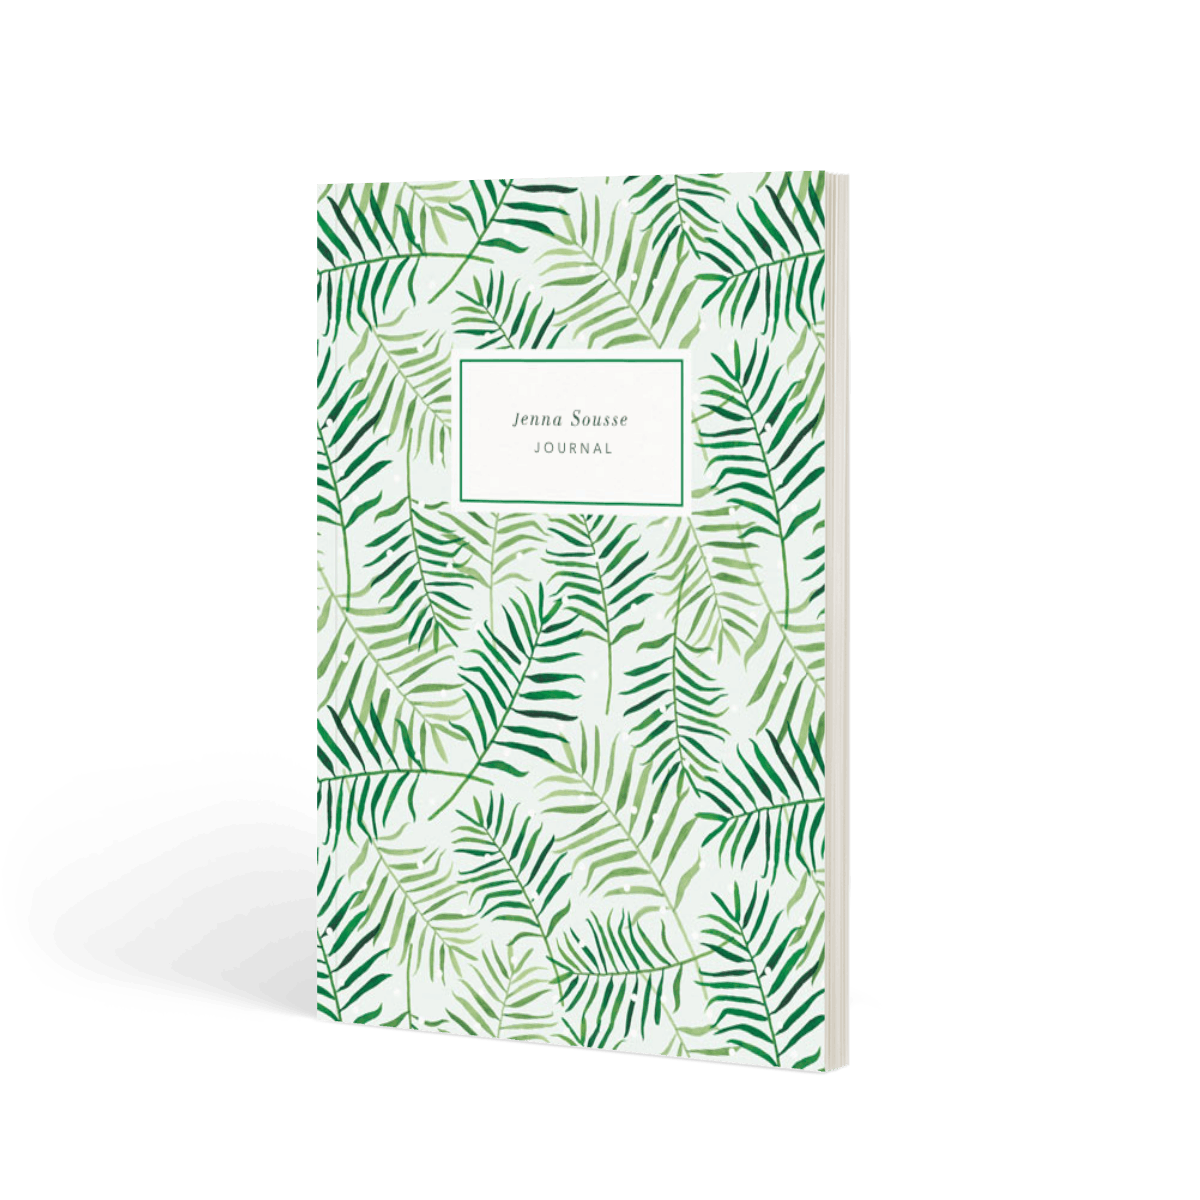 Https%3a%2f%2fwww.papier.com%2fproduct image%2f43411%2f6%2fpalm leaves 3810 avant 1568022267.png?ixlib=rb 1.1